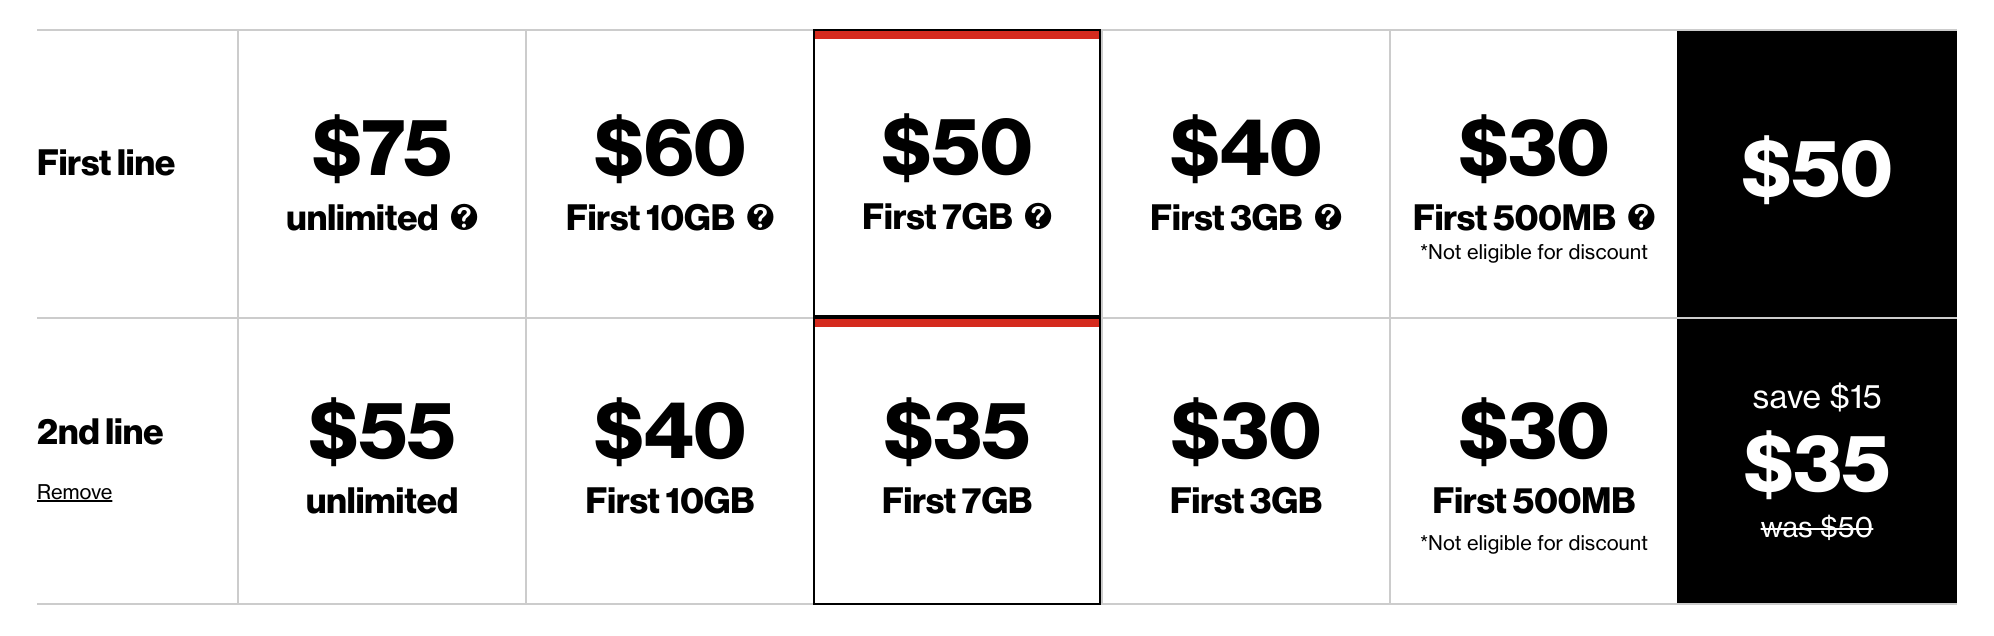 Verizon Prepaid tempts customers with double data promotion